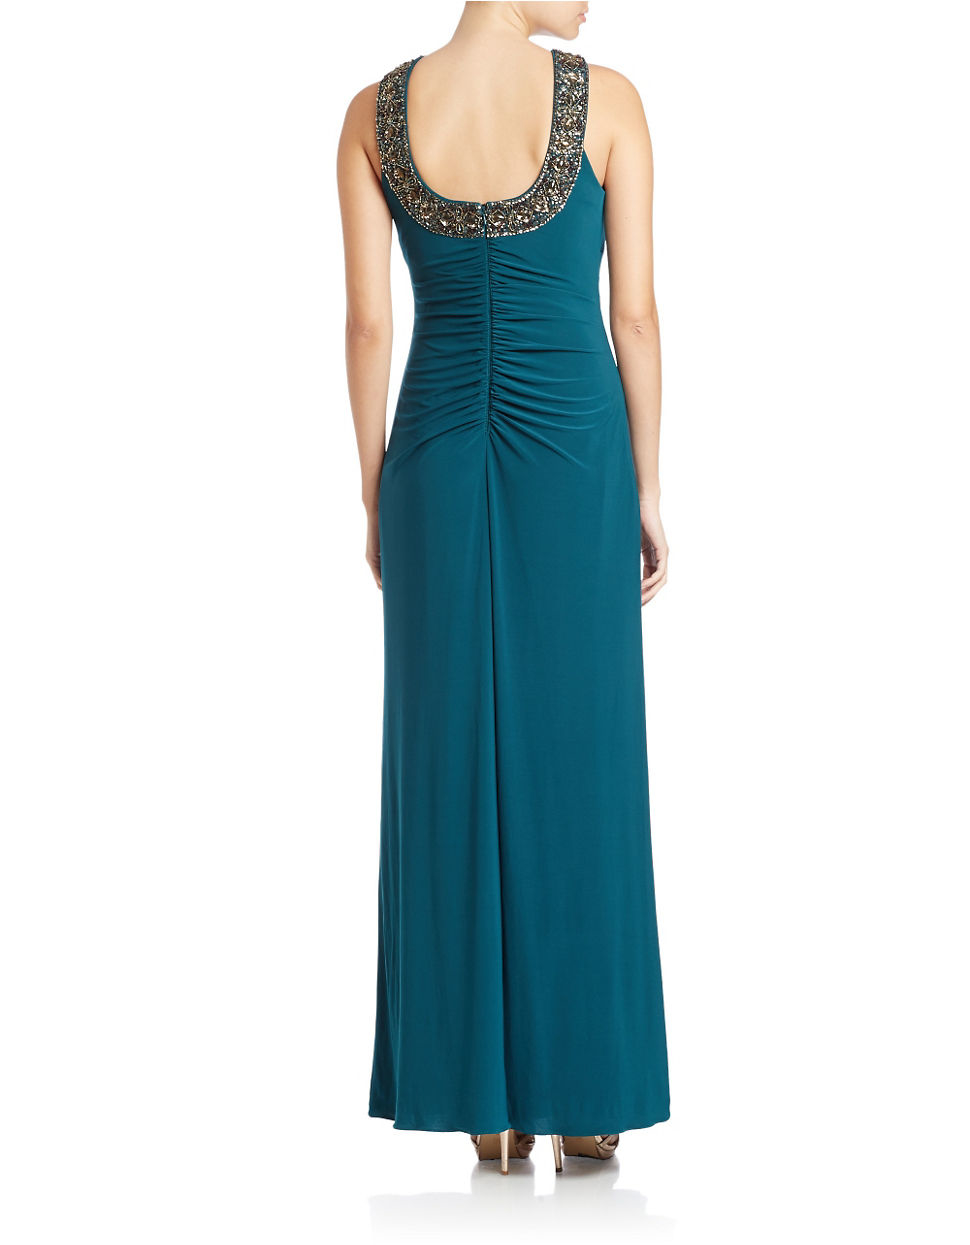 99fb3c8b7701 Xscape Beaded Necklace Gown in Blue - Lyst